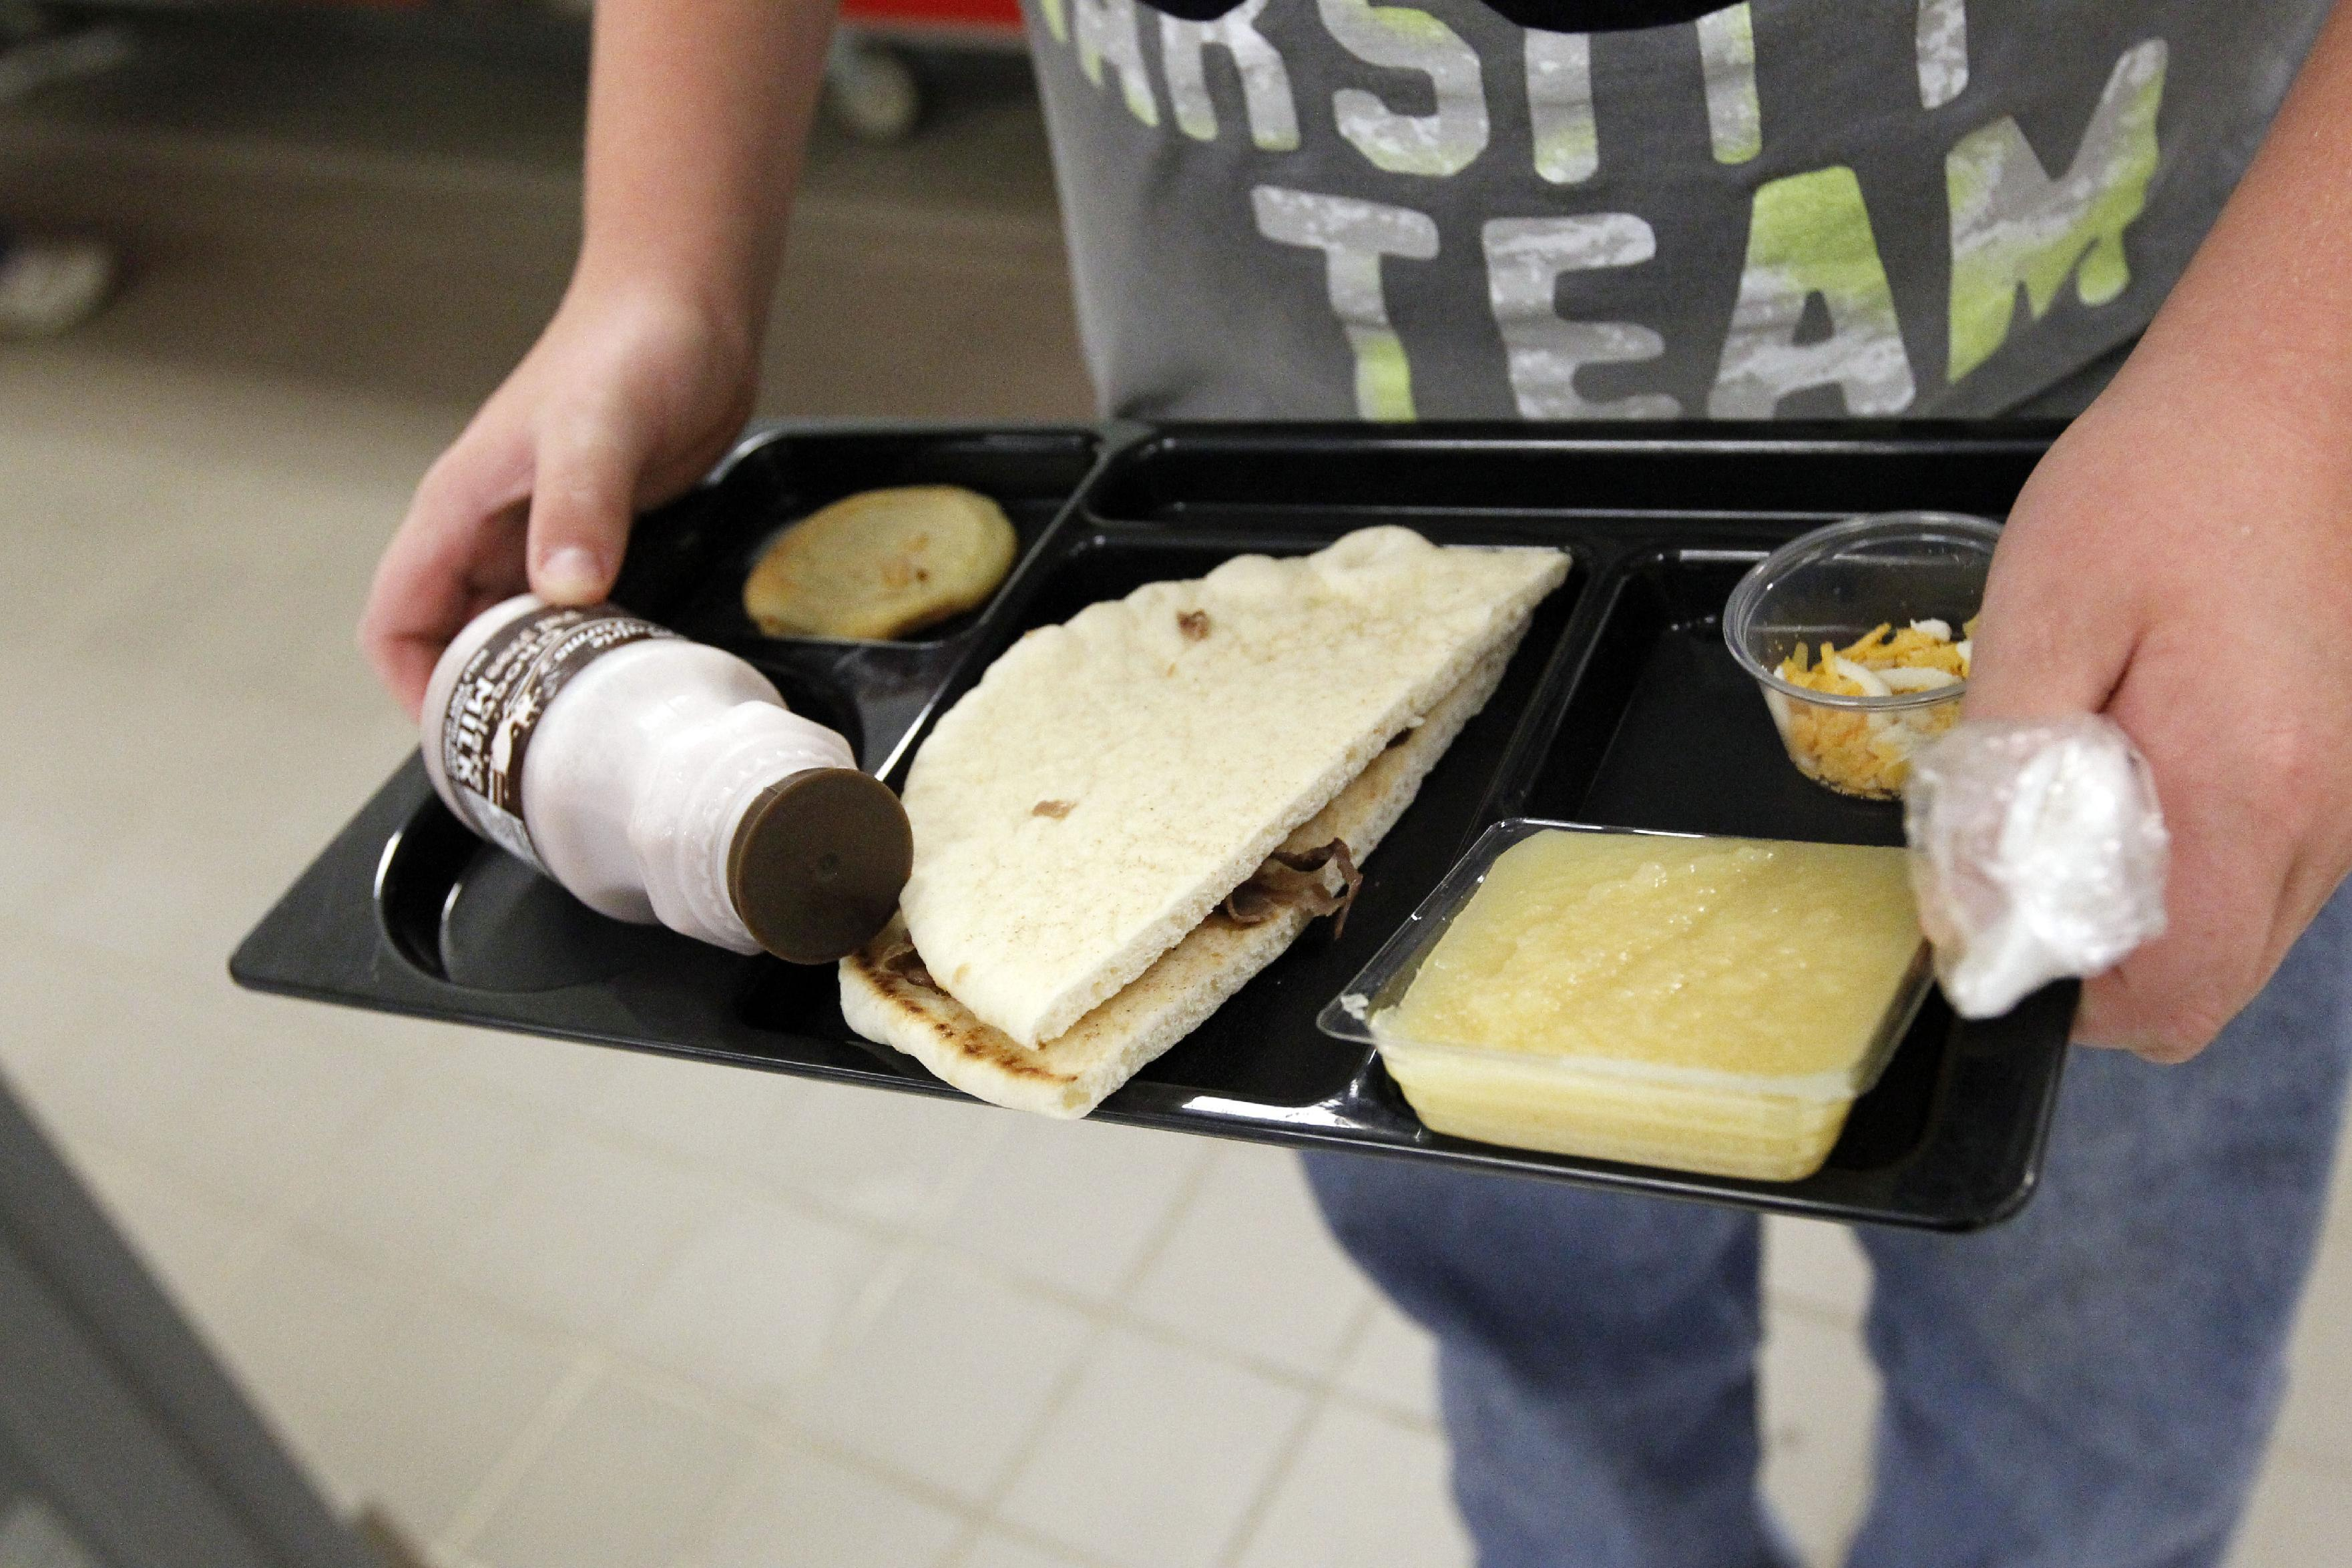 FILE - In this Wednesday, Sept. 12, 2012 file photo, a student at Eastside Elementary School in Clinton, Miss., holds a school lunch served under federal standards, consisting of a flatbread roast beef sandwich, apple sauce, chocolate milk and a cookie. After just one year, some schools across the nation are dropping out of what was touted as a healthier federal lunch program, complaining that so many students refused the meals packed with whole grains, fruits and vegetables that their cafeterias were losing money. (AP Photo/Rogelio V. Solis, File)